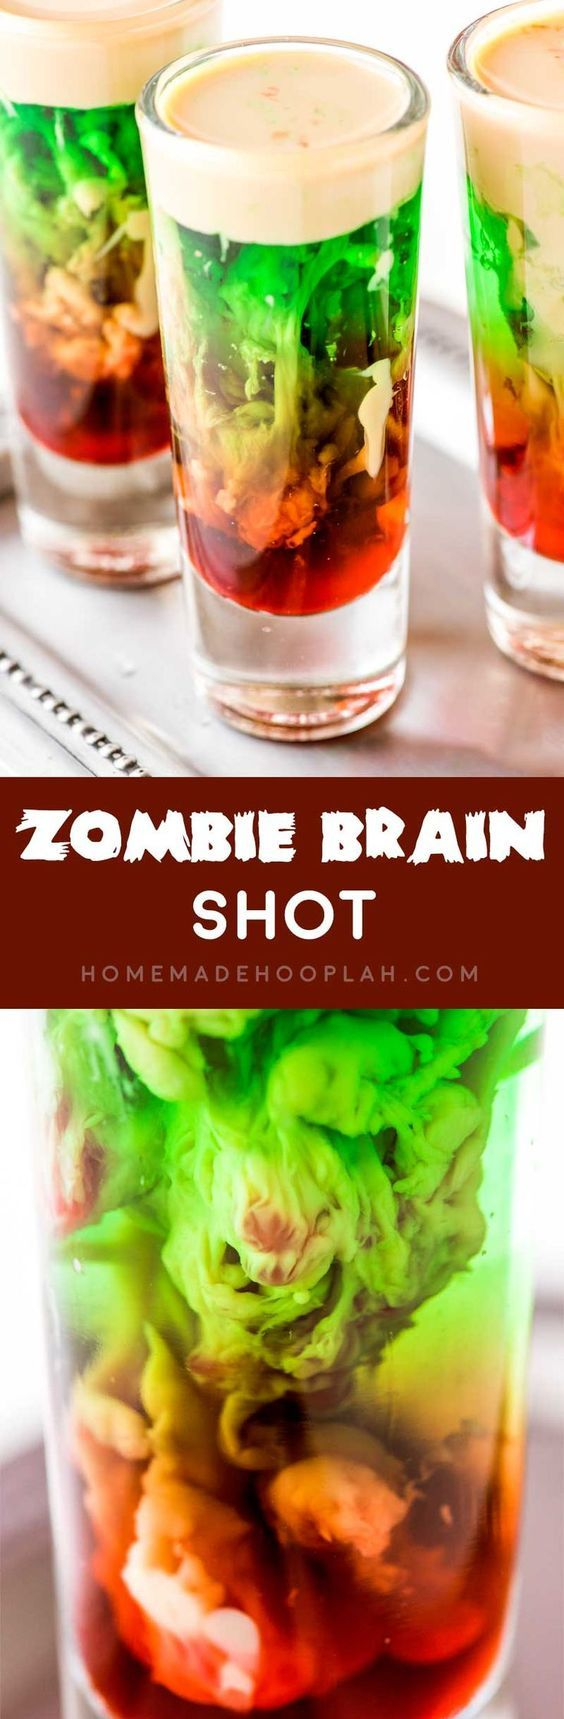 This totally creepy and absolutely cool zombie brain shot is the ultimate Halloween drink. And it's as fun to make as it is to shoot - if you dare!